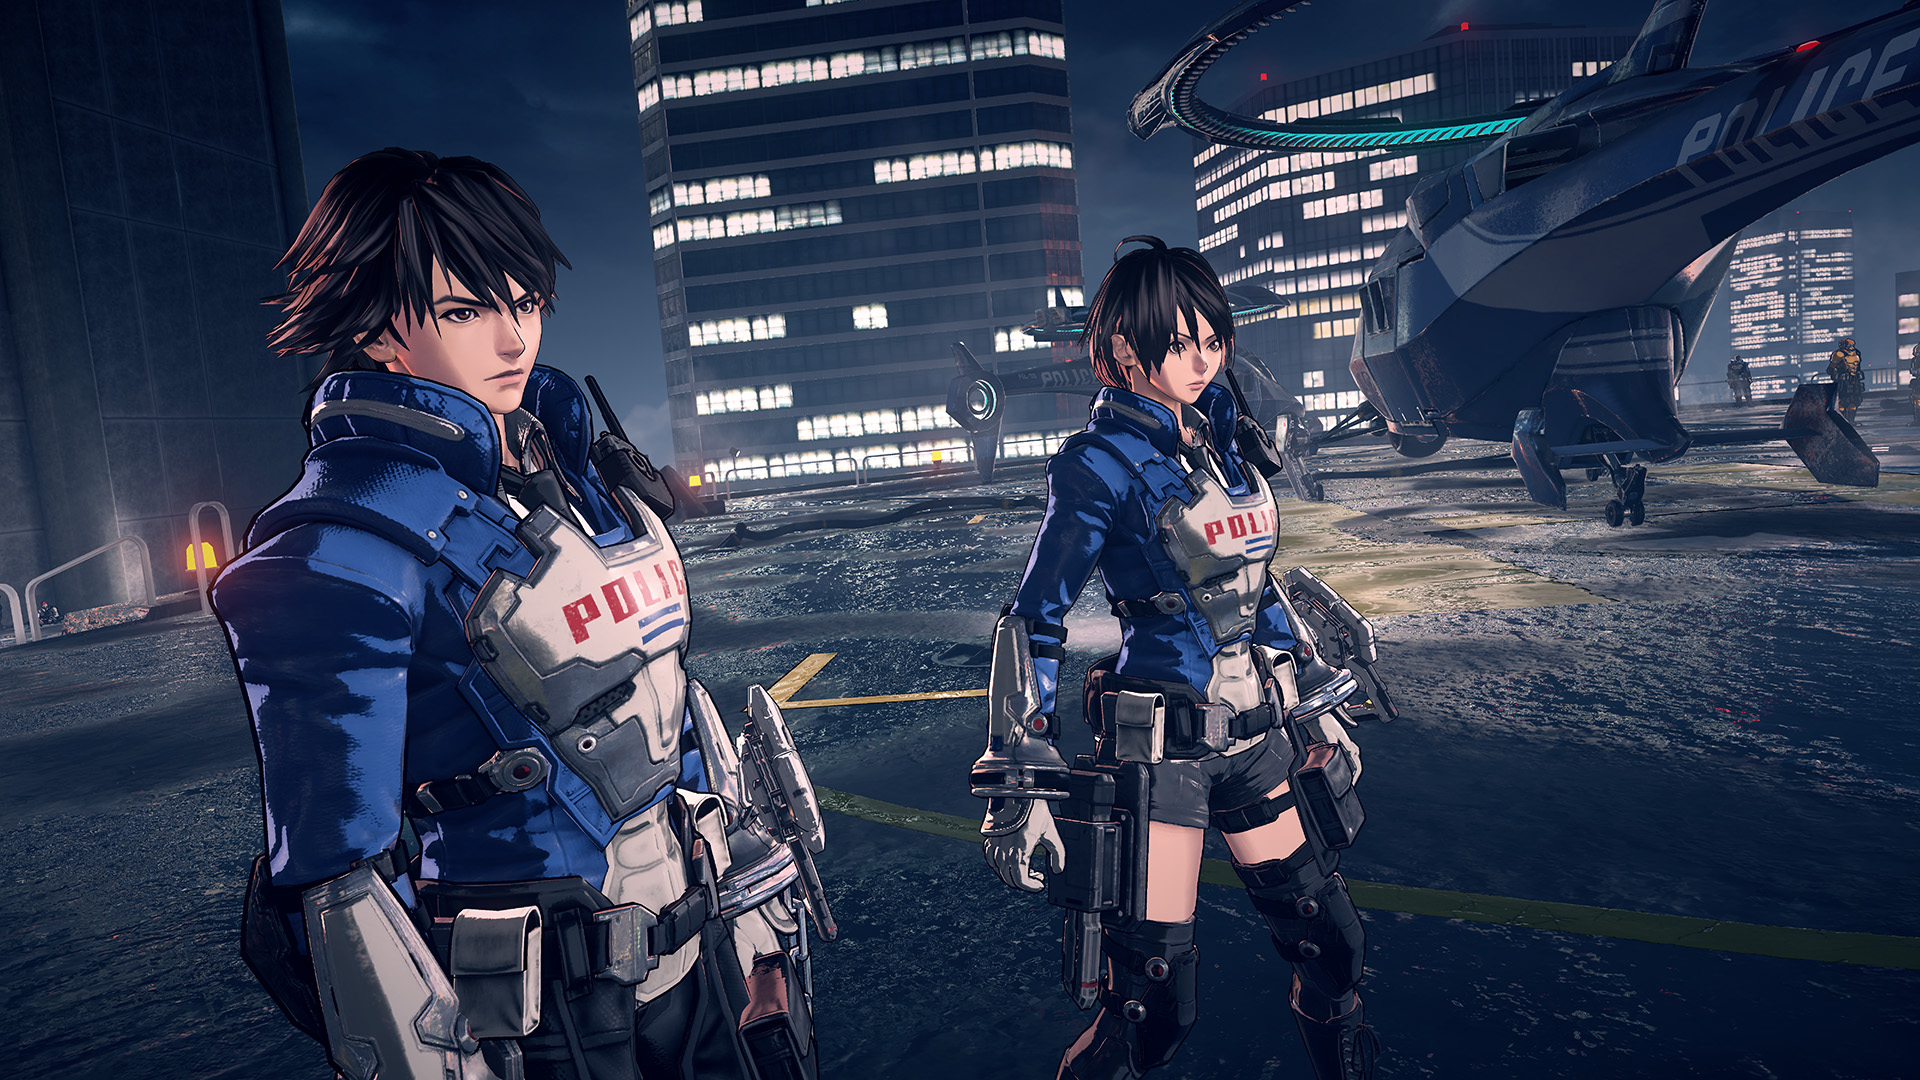 Astral Chain jumeaux